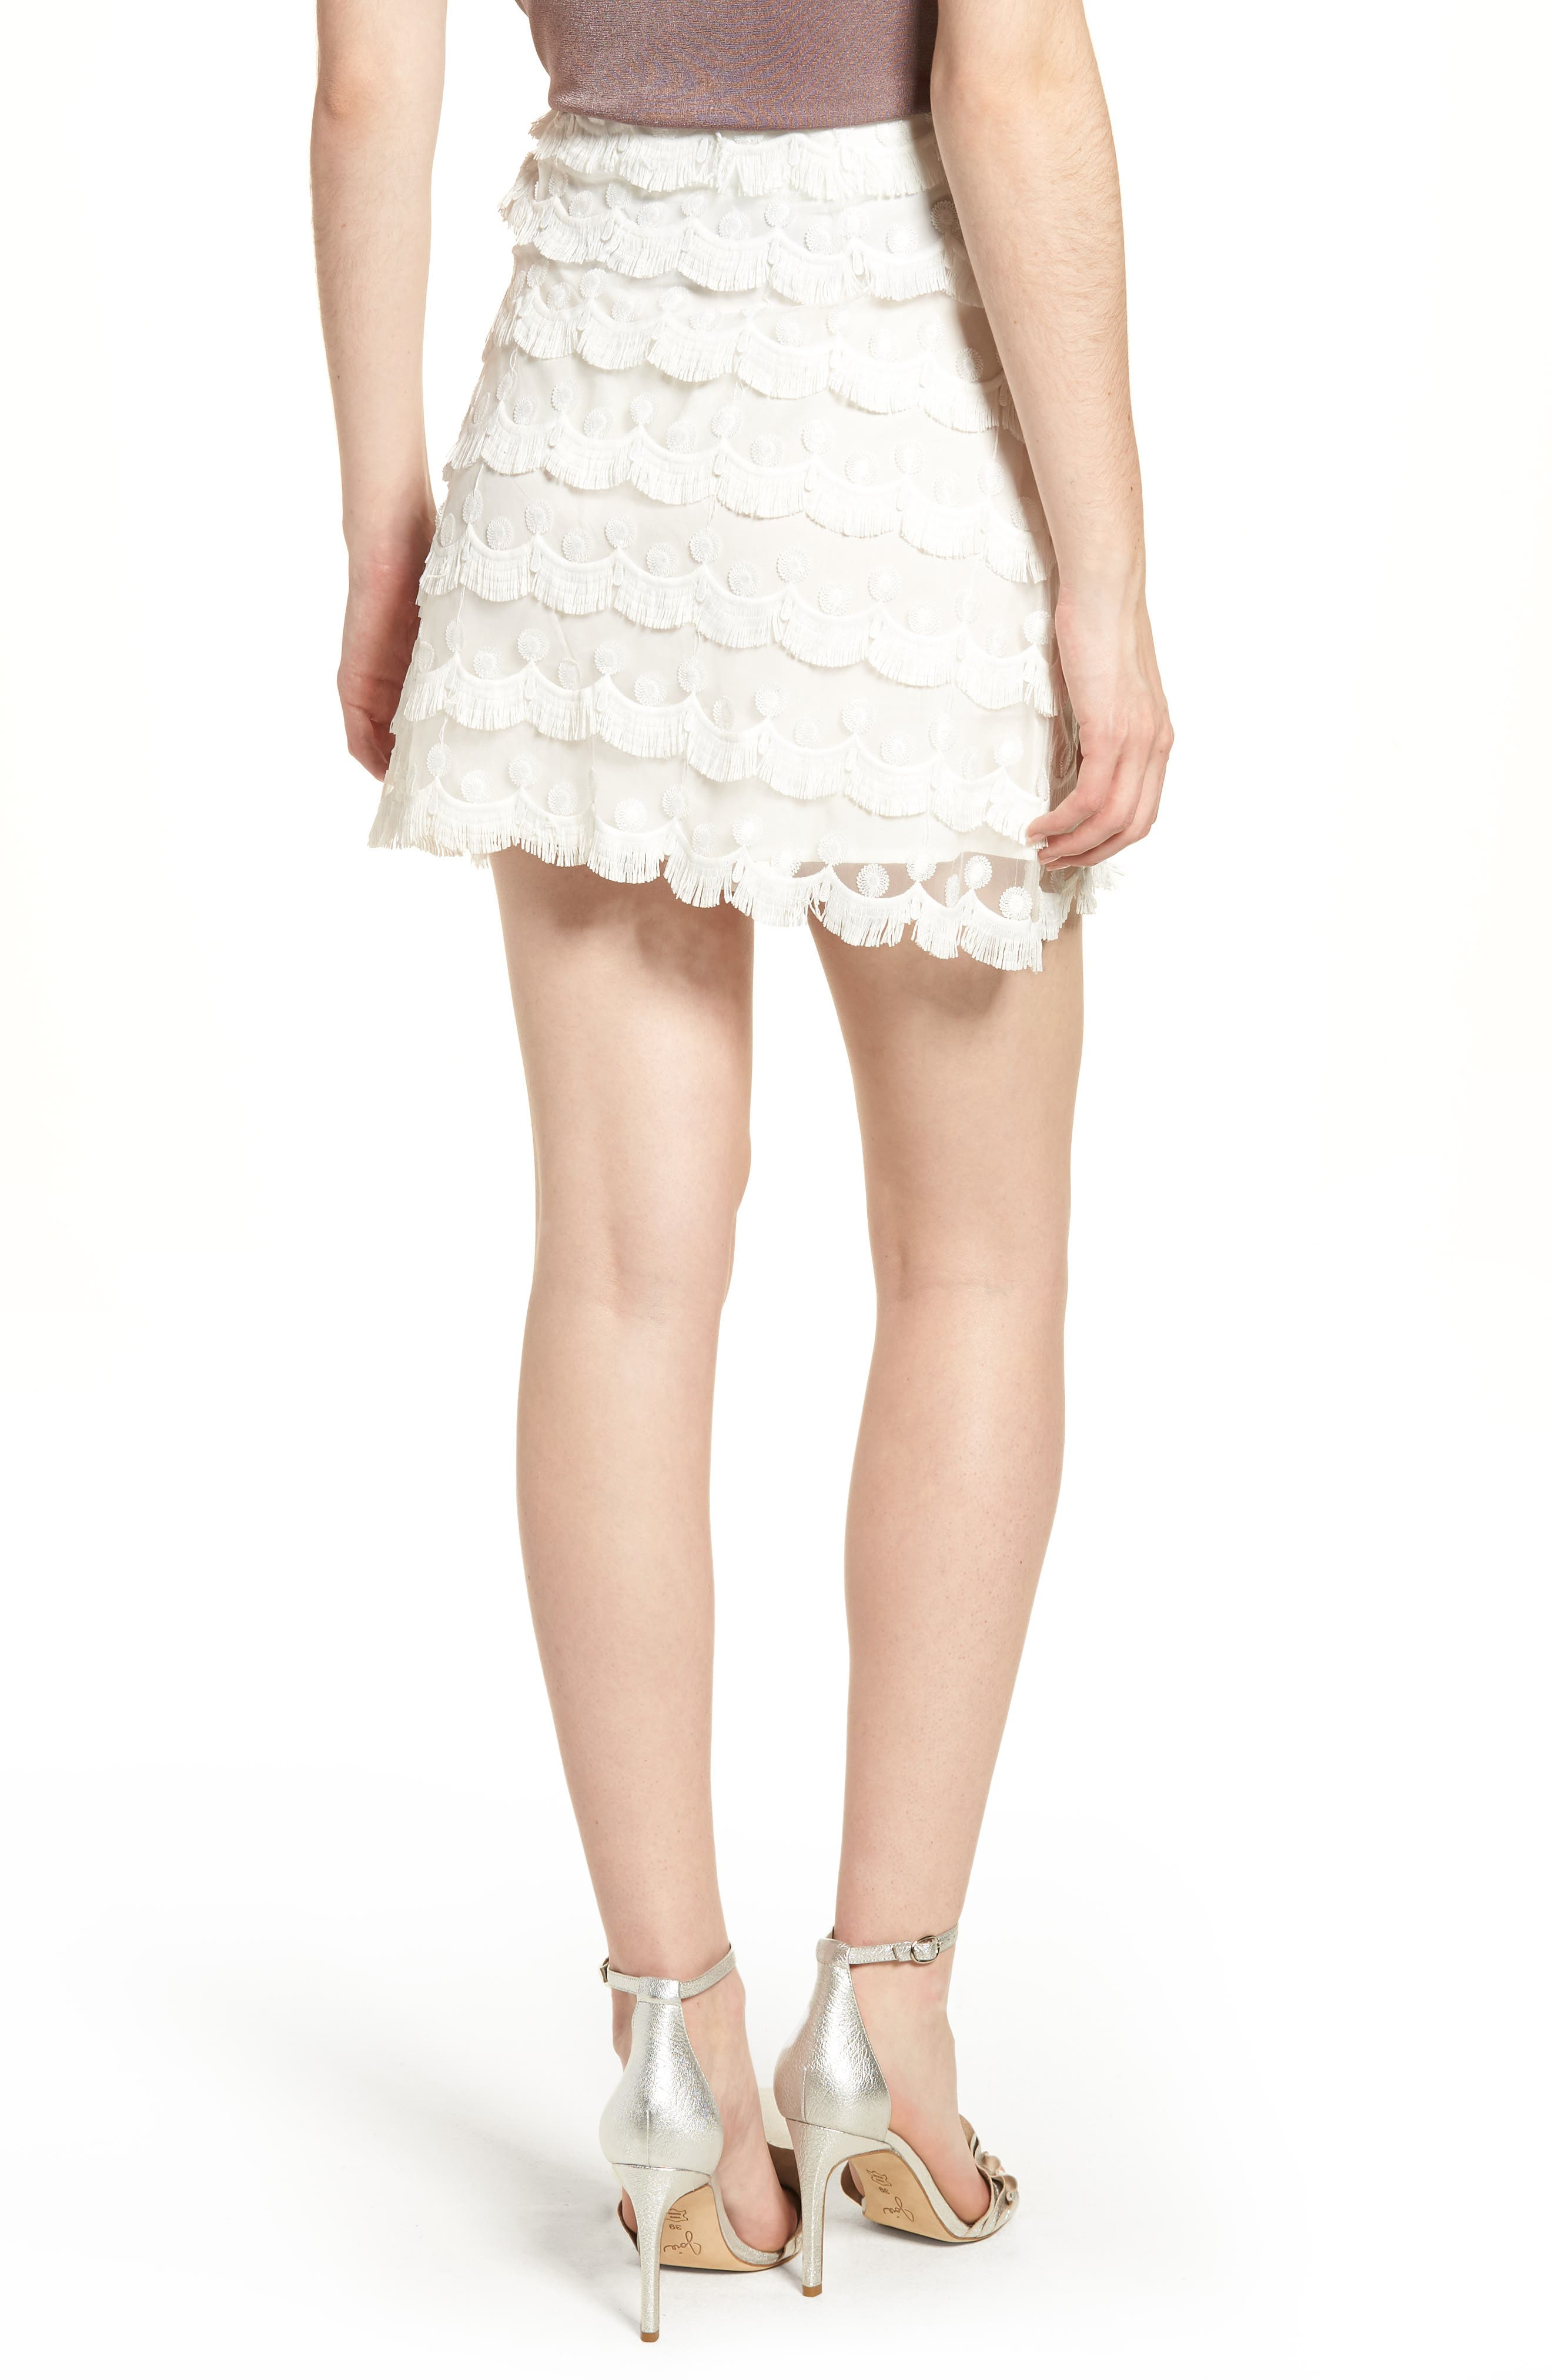 3D Lace Fringed Miniskirt,                             Alternate thumbnail 3, color,                             White